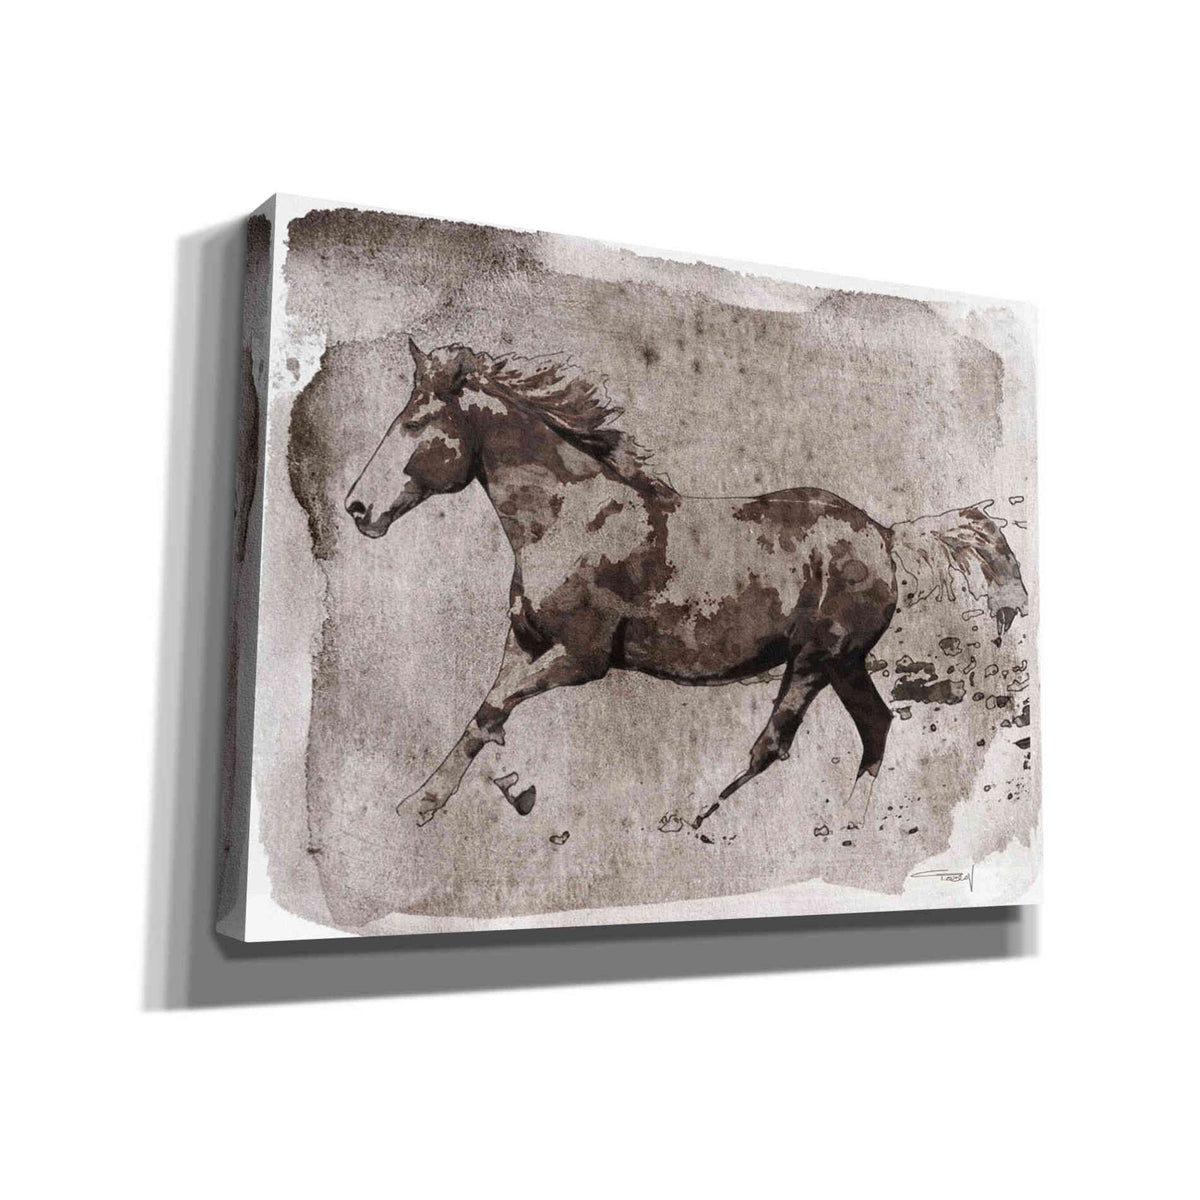 Epic Graffiti 'Brown Horse Running' by Irena Orlov, Giclee Canvas Wall Art